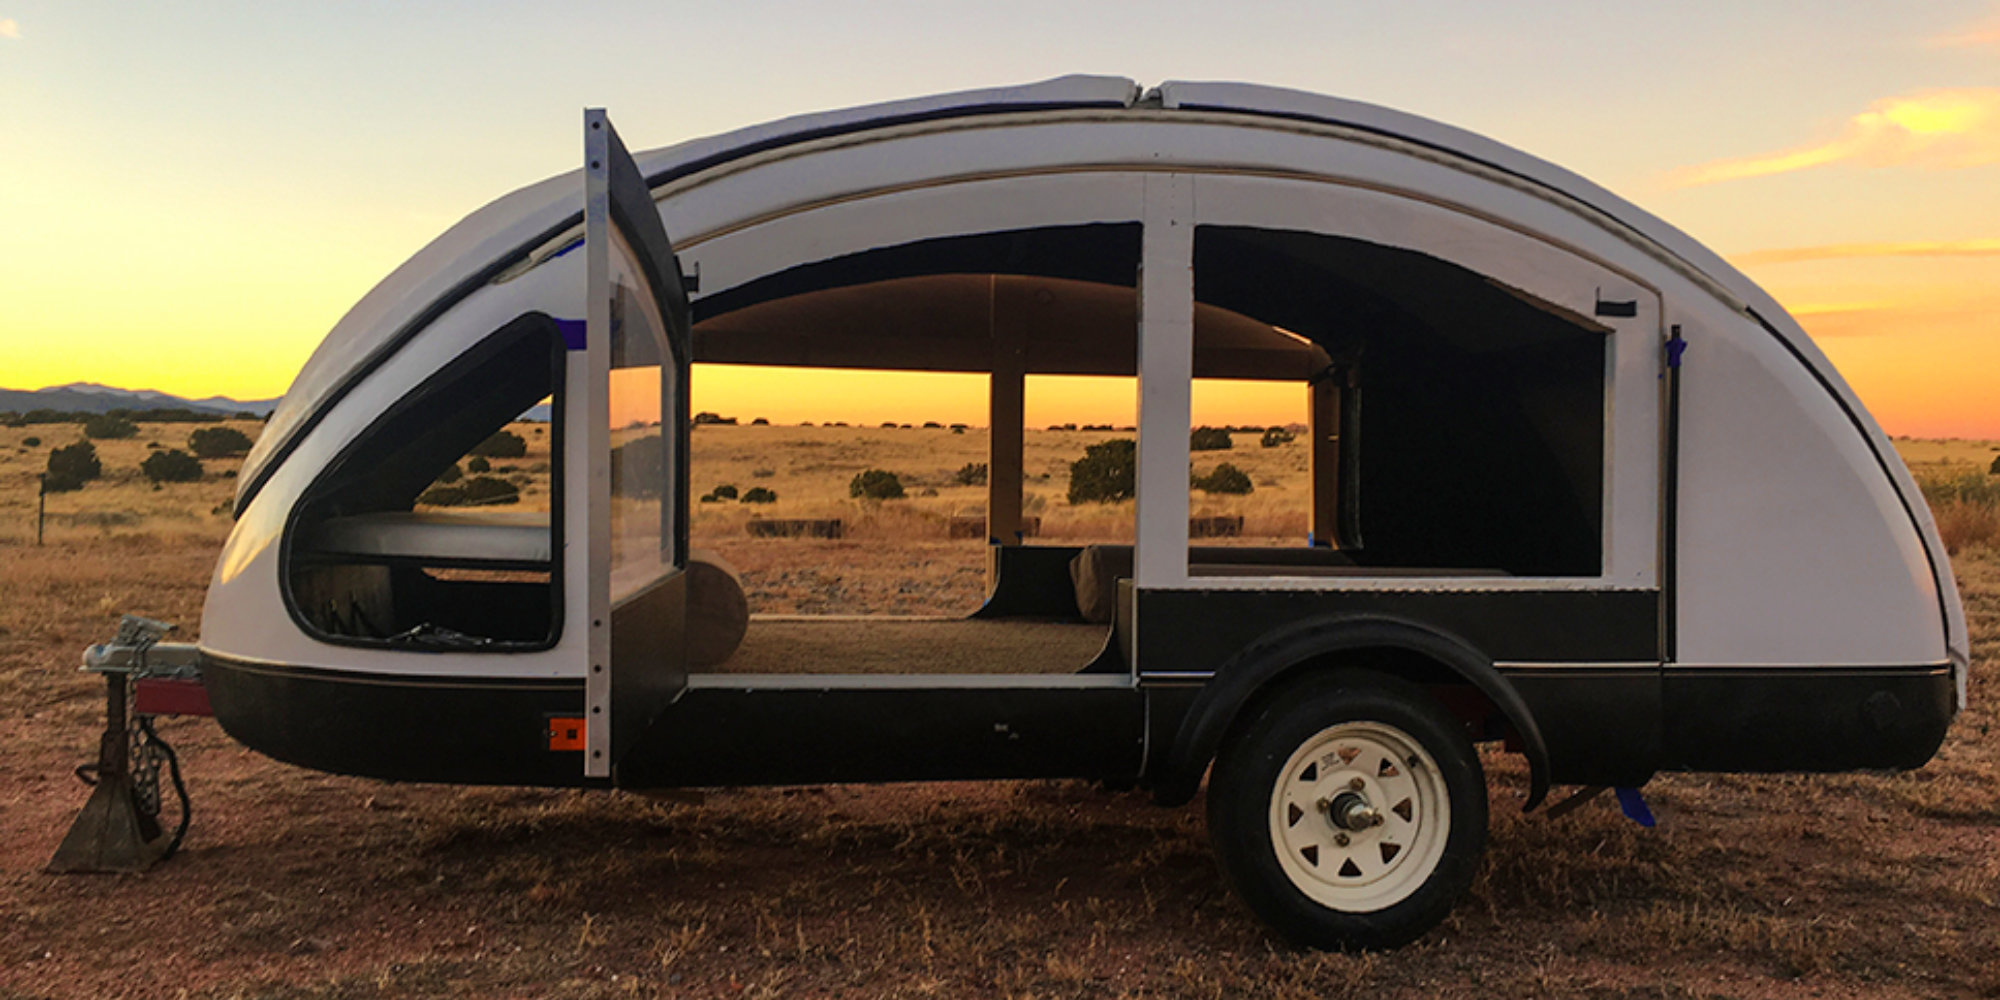 The new Earth Traveler Teardrop Trailer is made of carbon fiber and weighs in at only 216 pounds